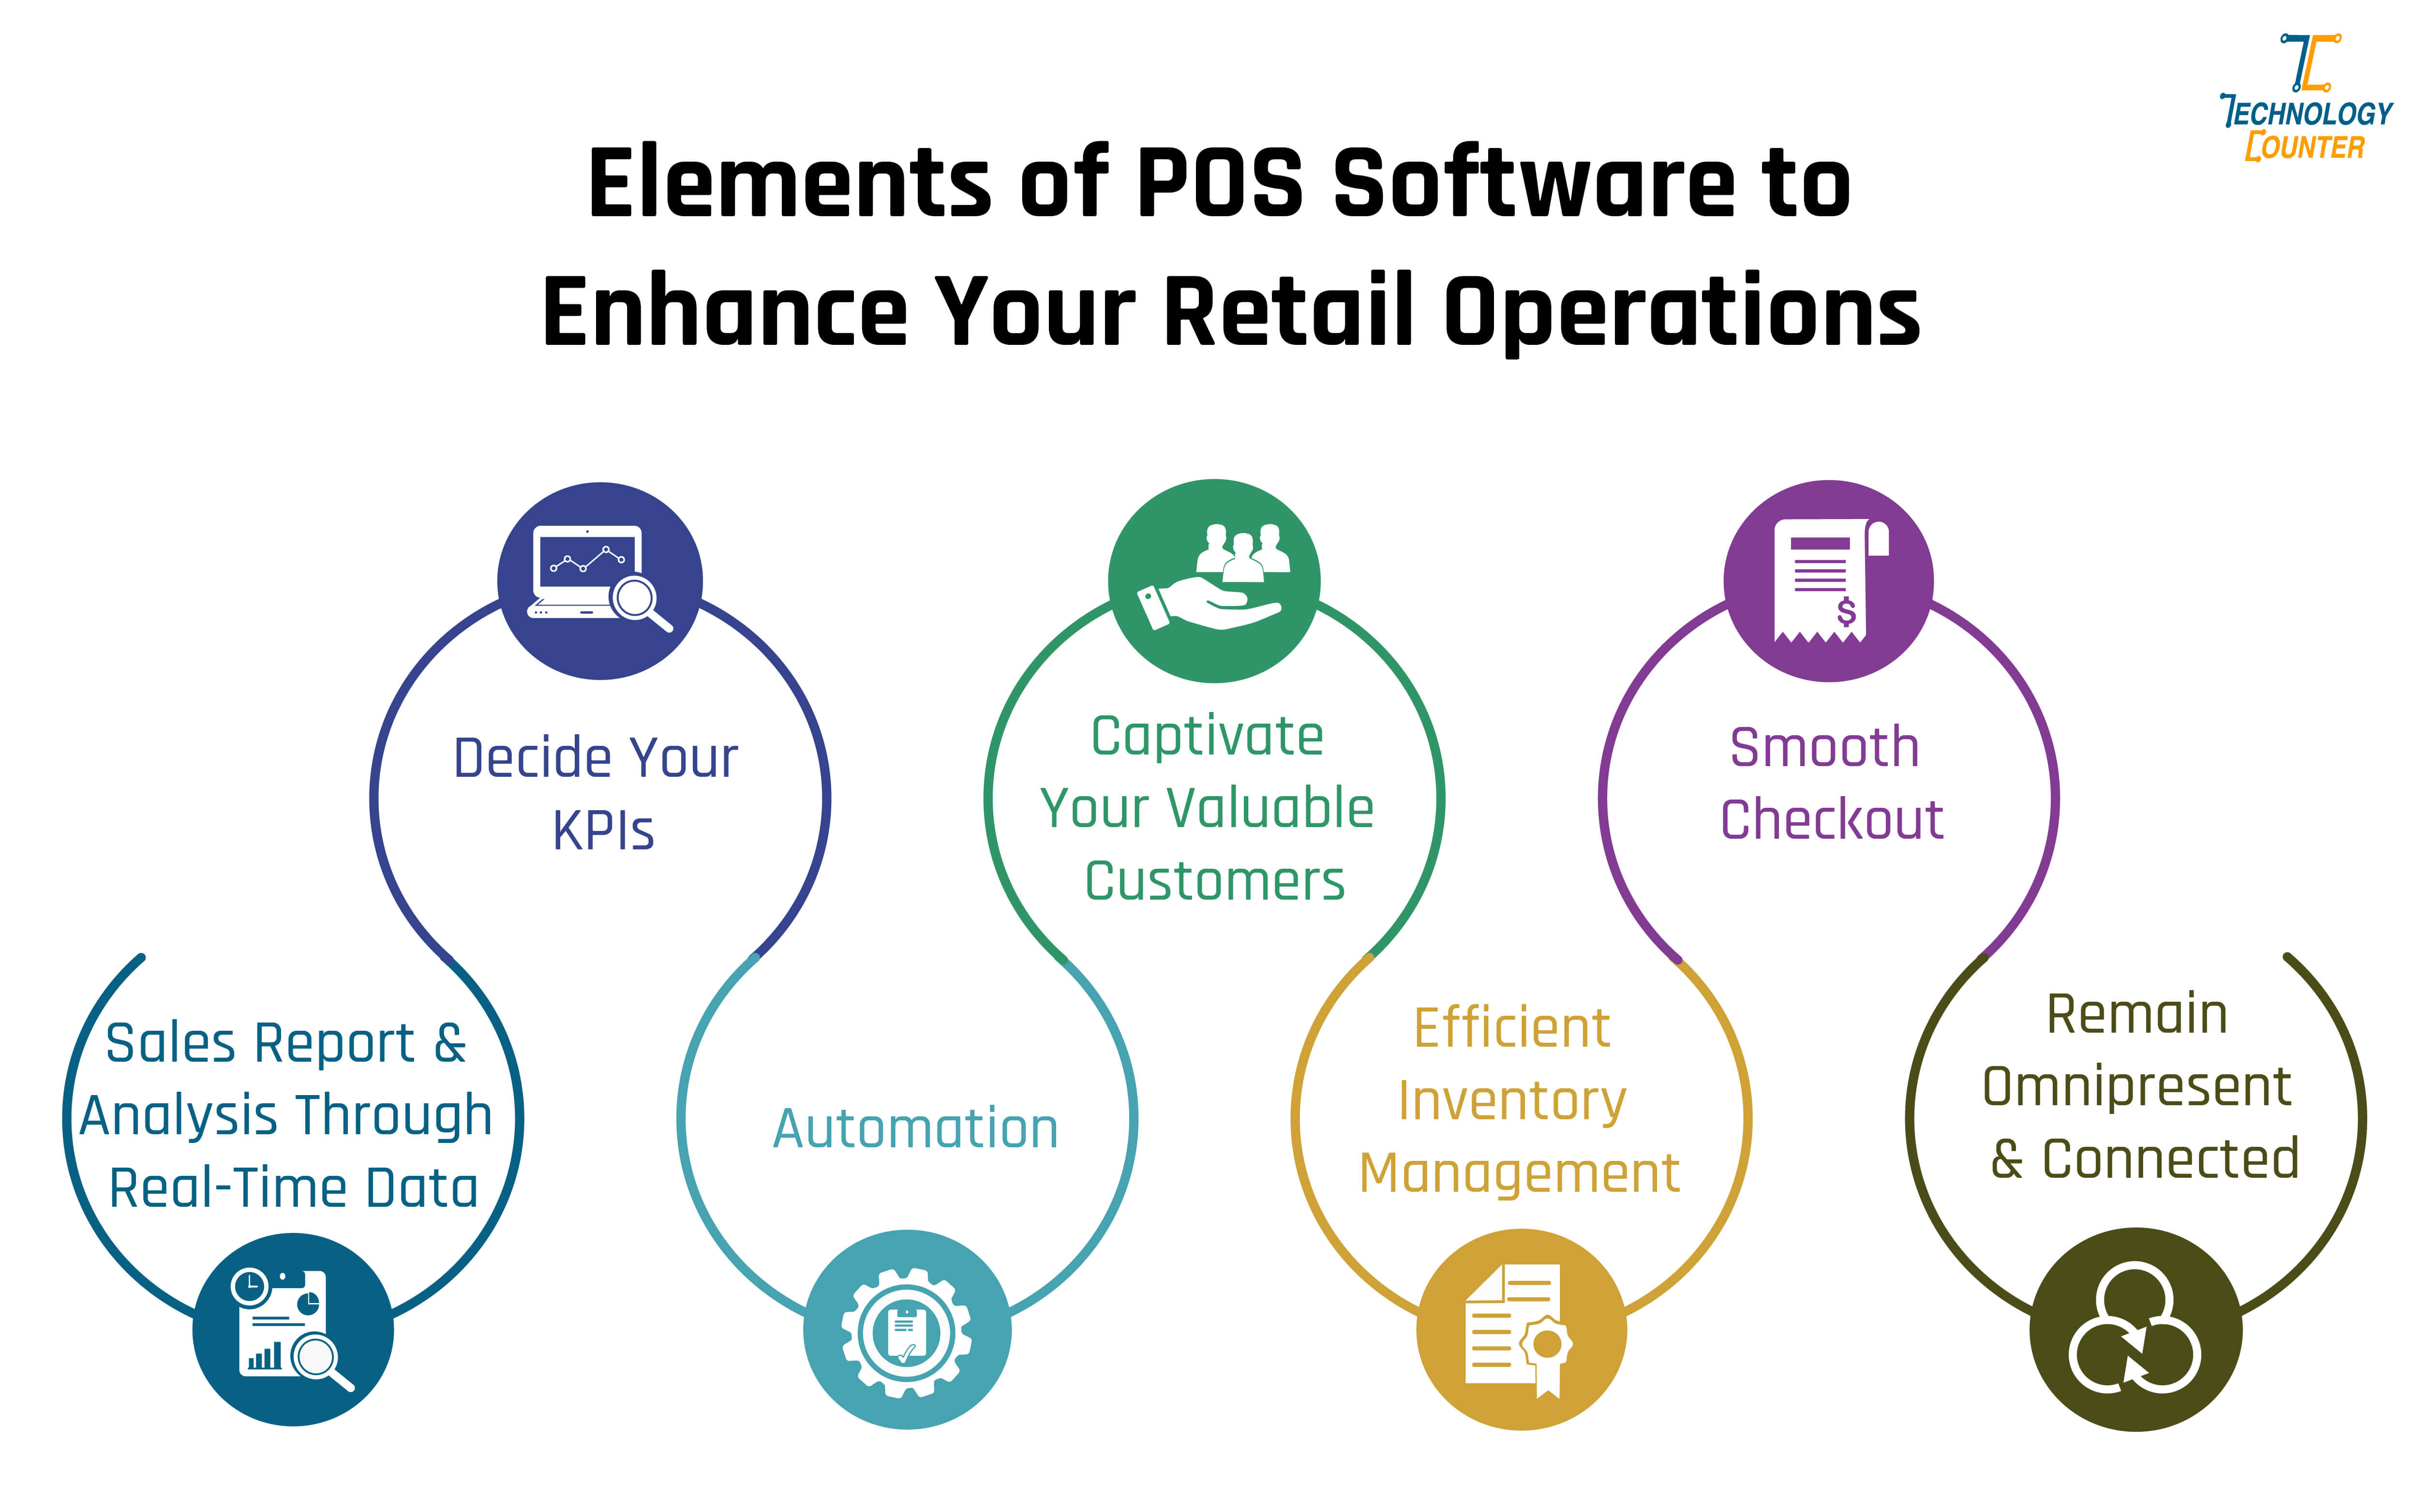 Elements of POS Software to Enhance Your Retail Operations